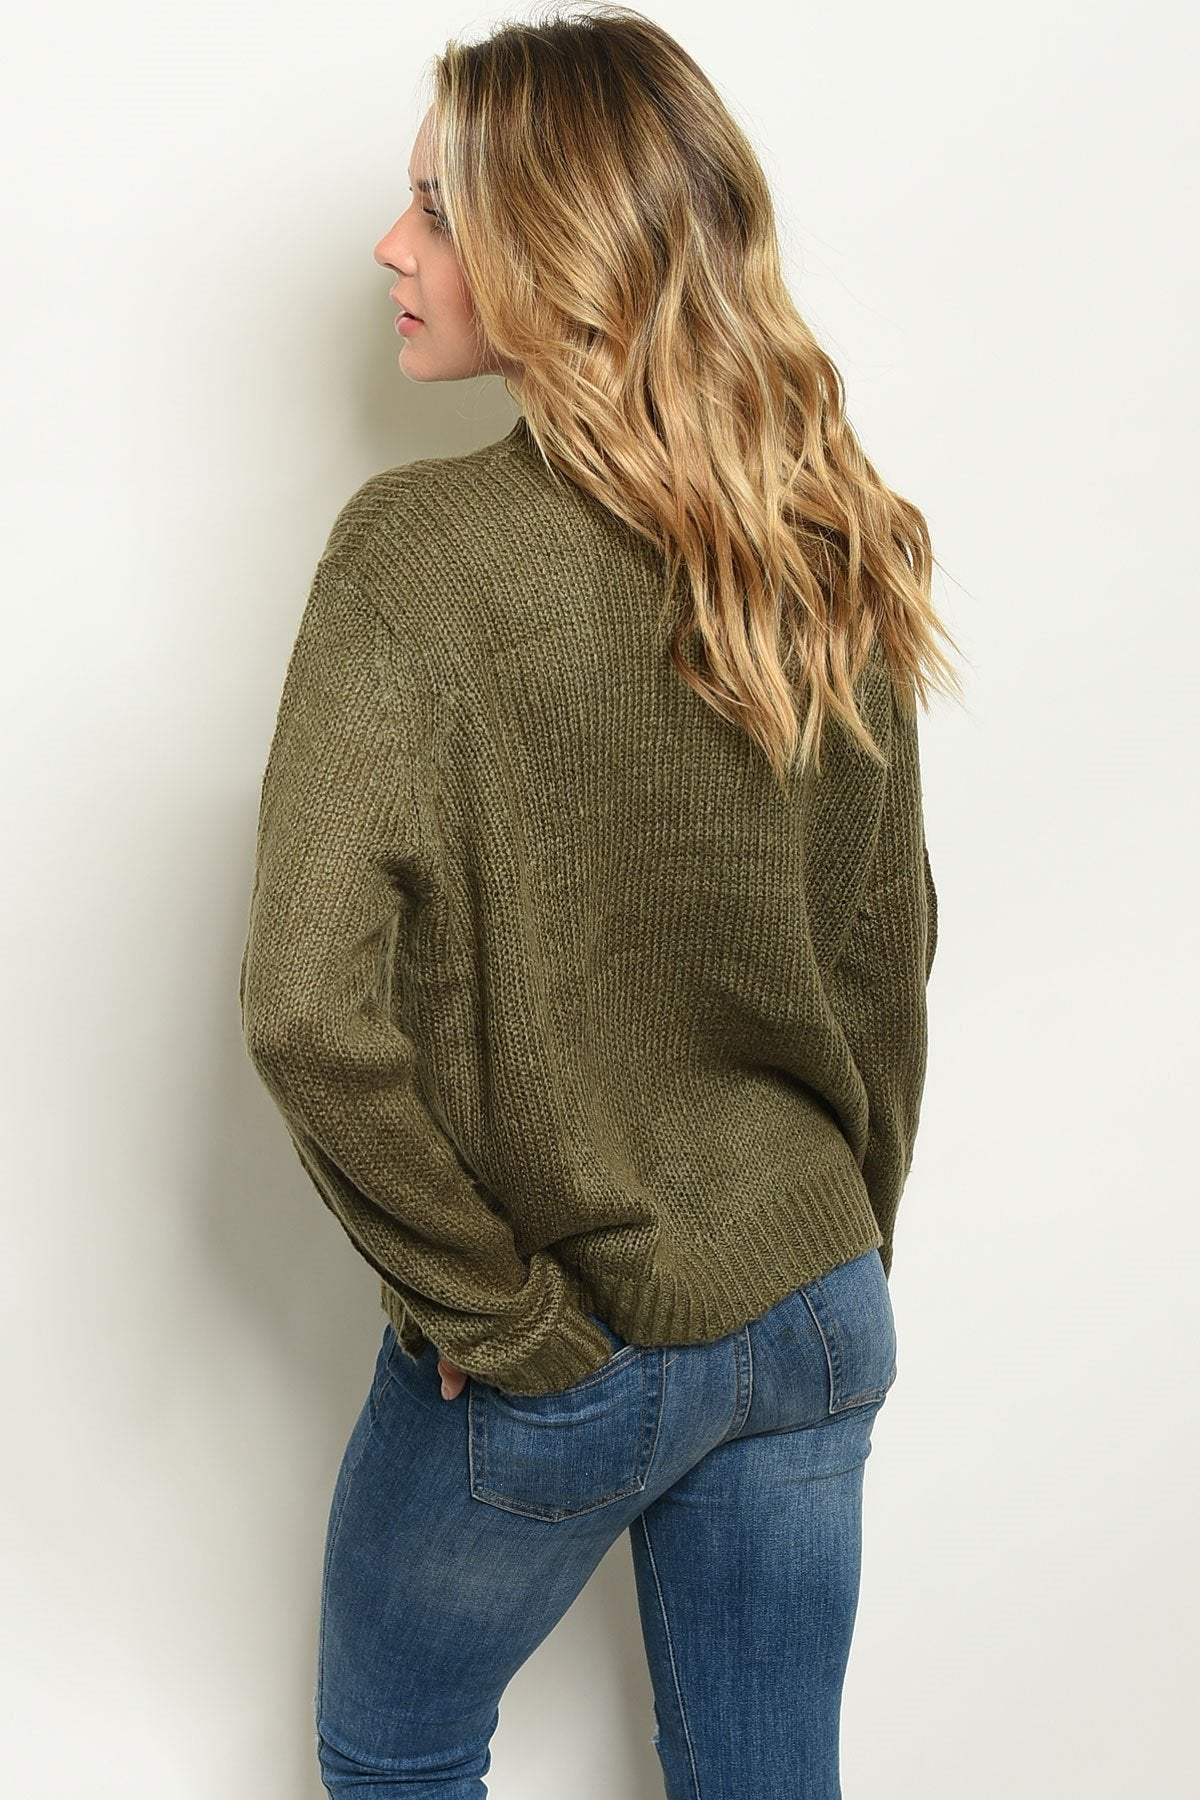 Shop the Trends Knit Sweater - Manifest Best Boutique